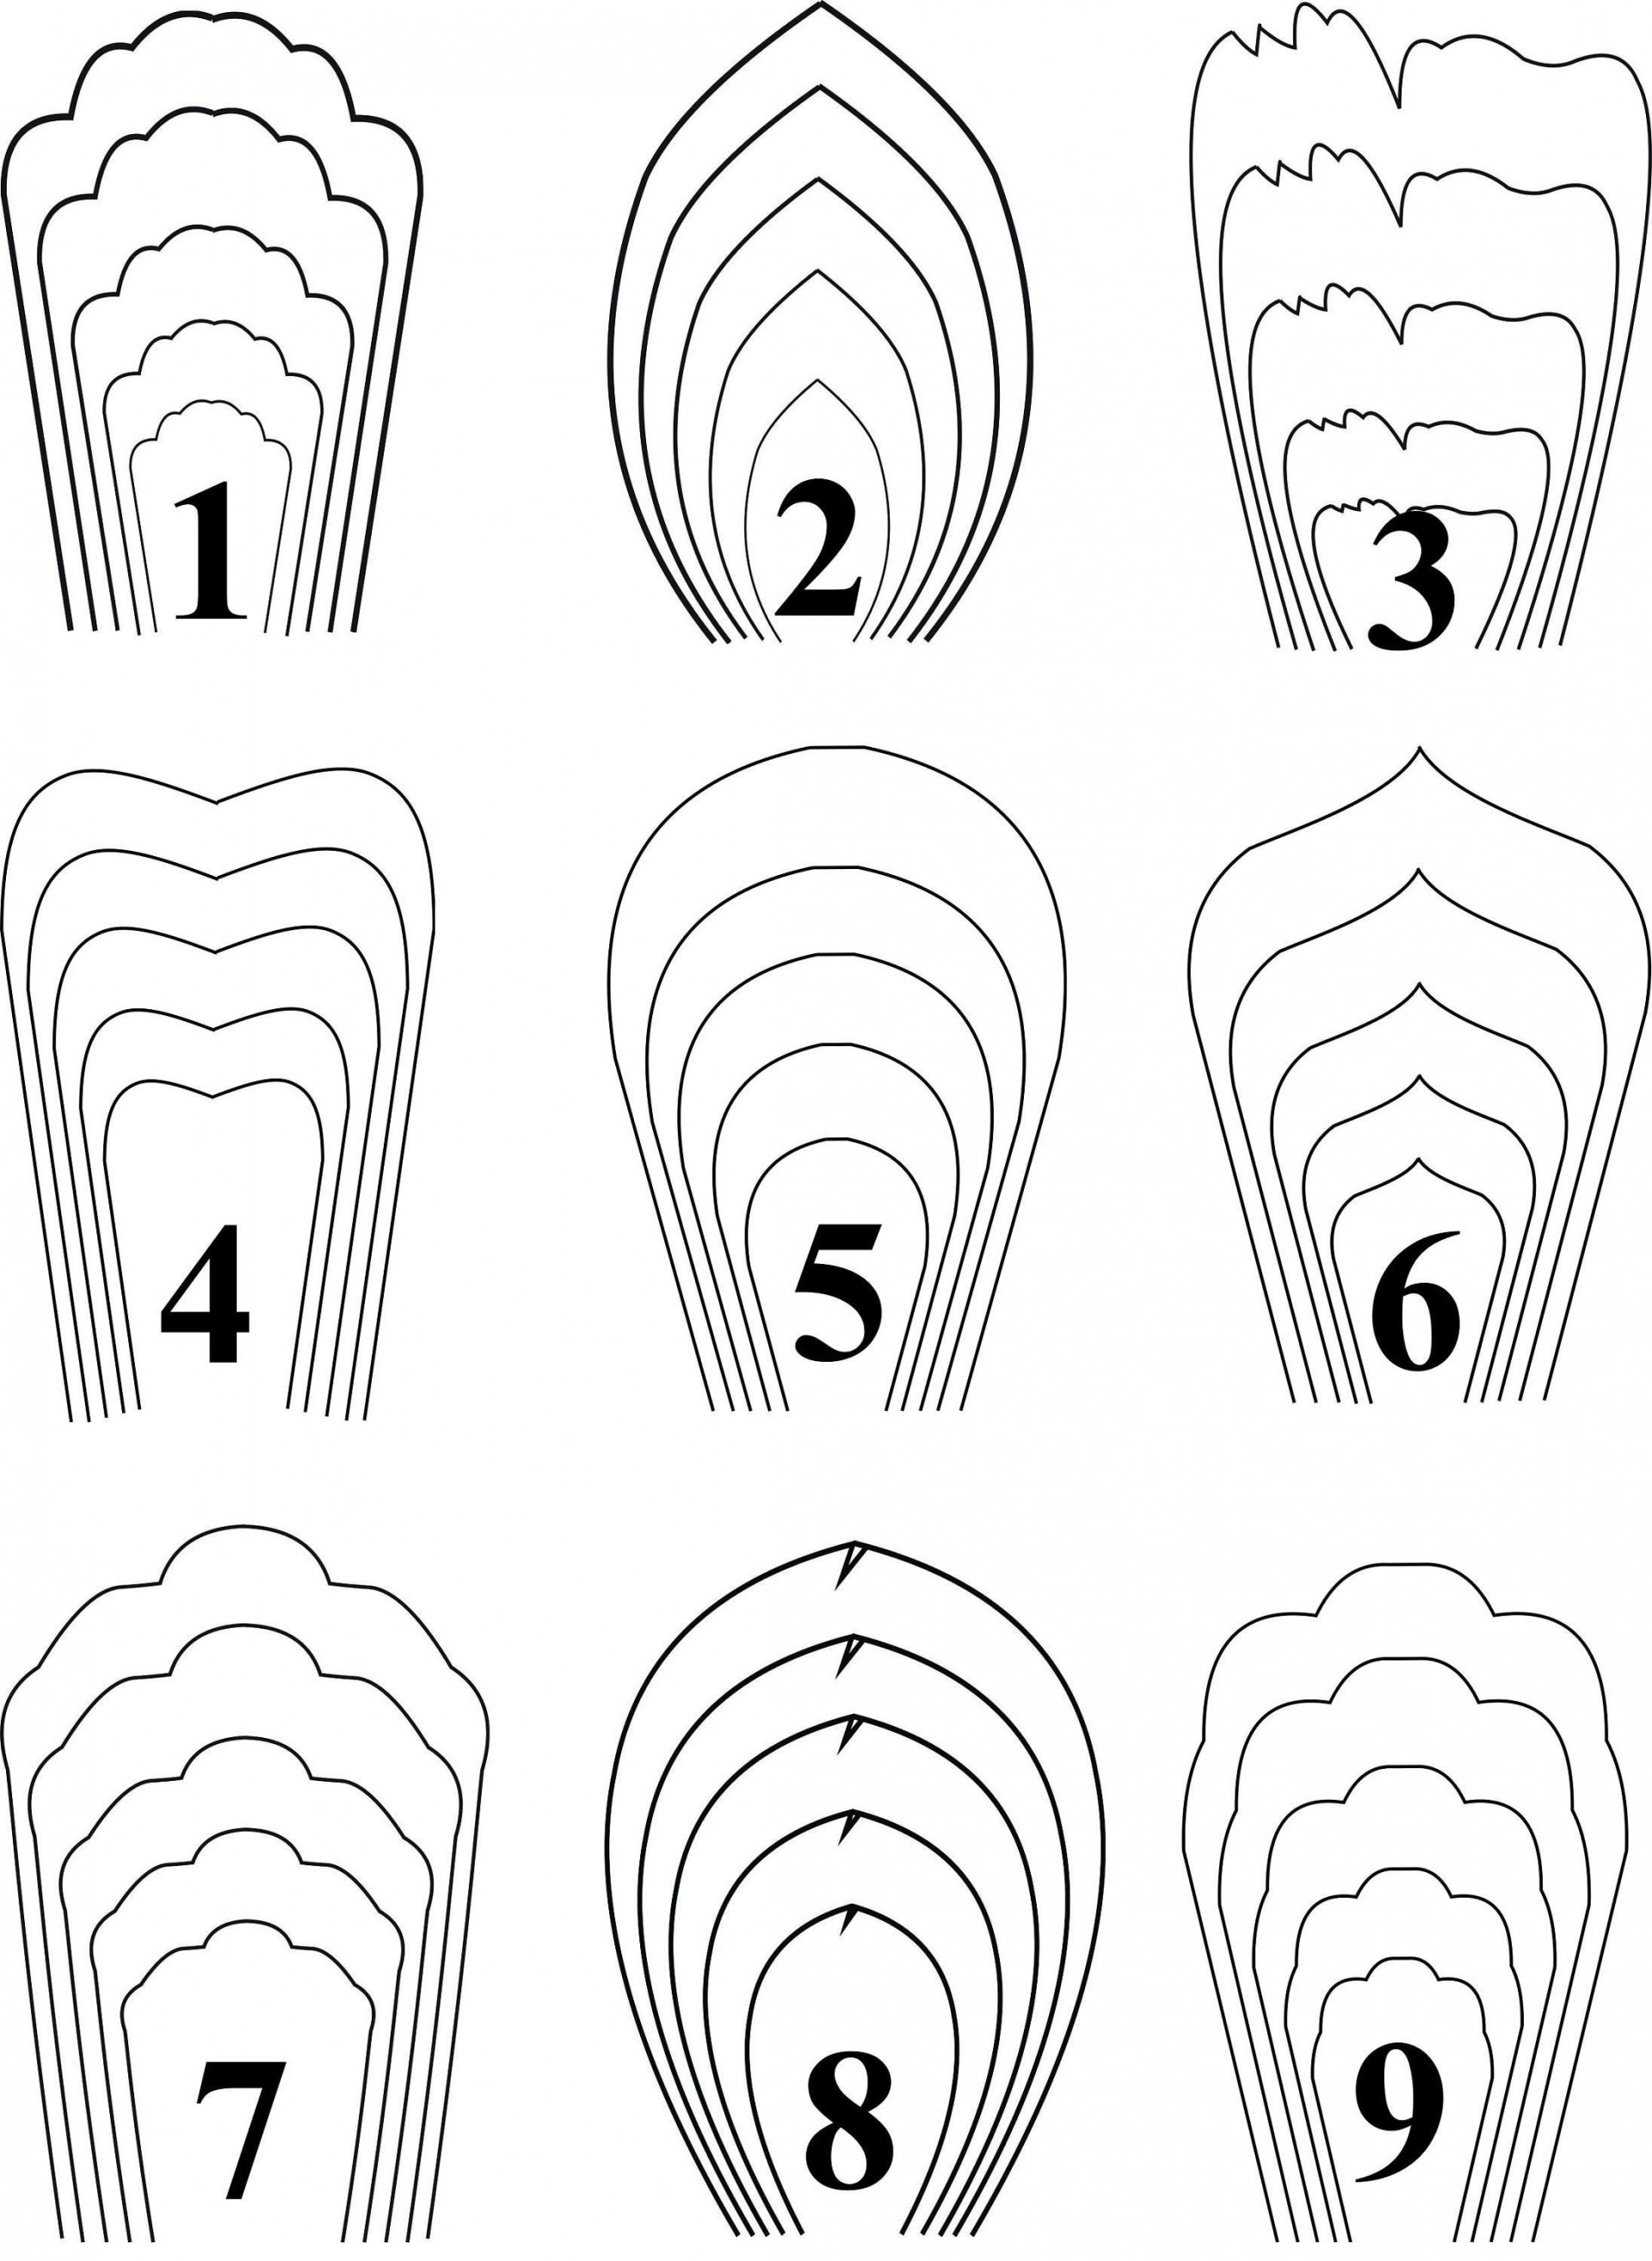 000 Fantastic Downloadable Free Printable Paper Flower Template Picture  Templates1920